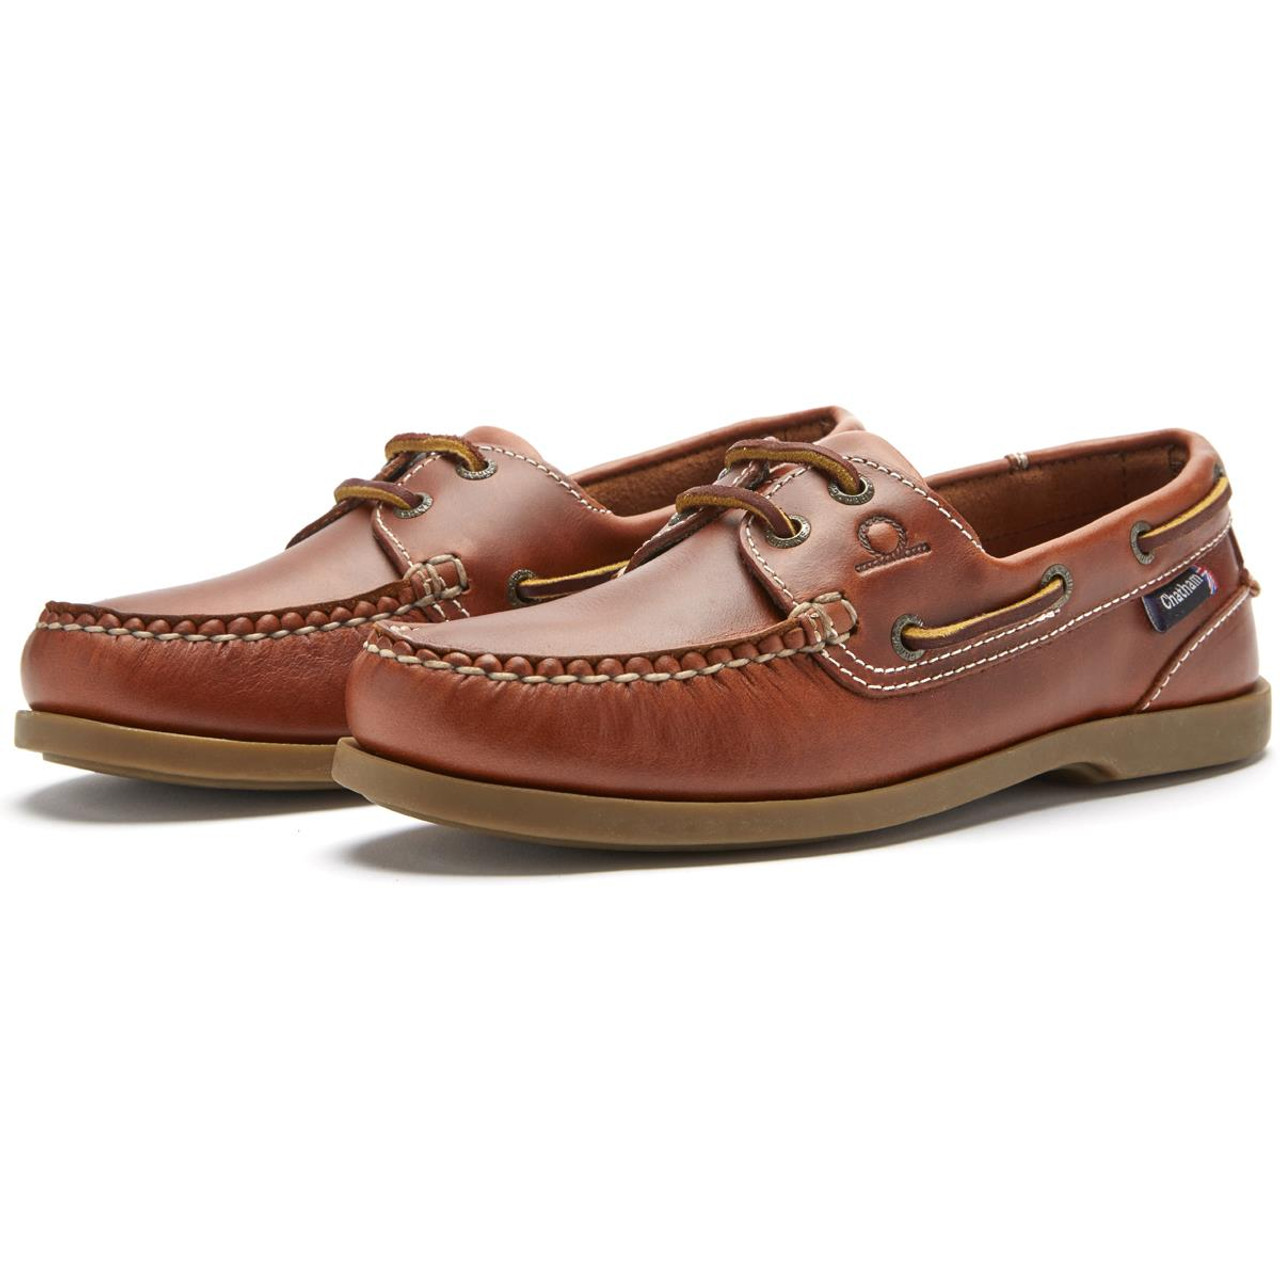 Chatham Deck G2 Ladies Boat Shoes